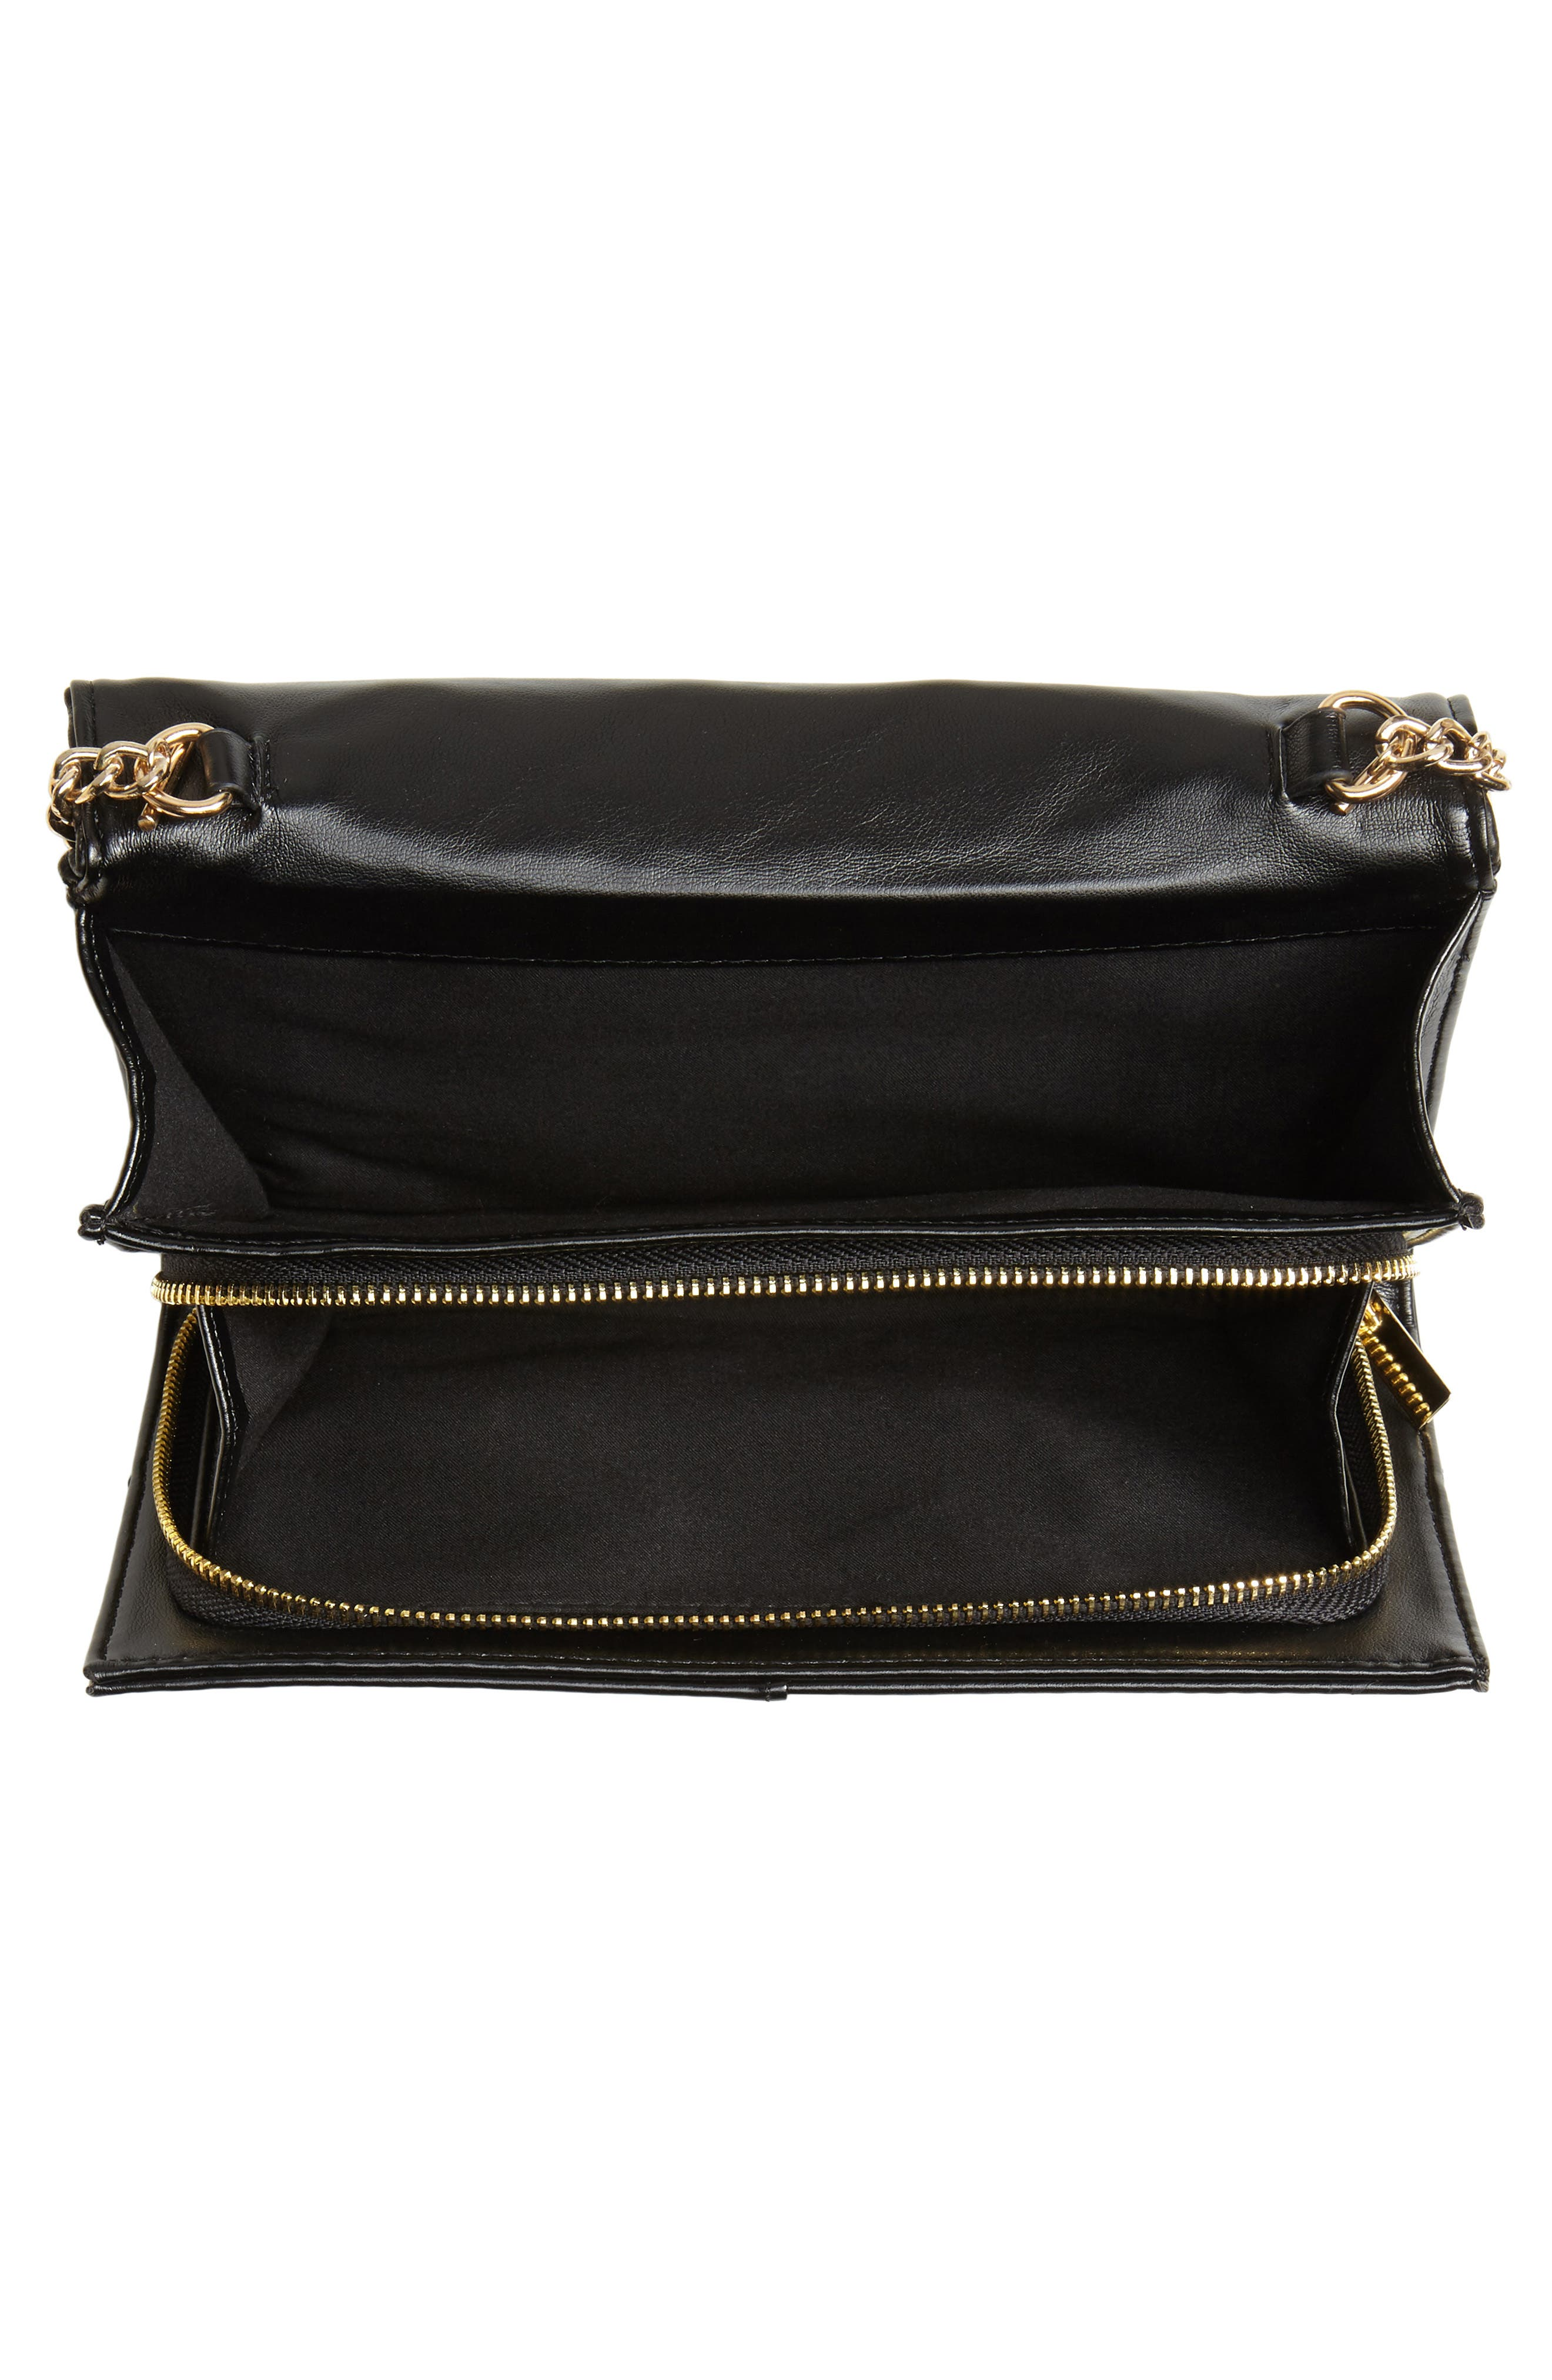 Mali + Lili Ciara Quilted Vegan Leather Convertible Clutch,                             Alternate thumbnail 4, color,                             BLACK